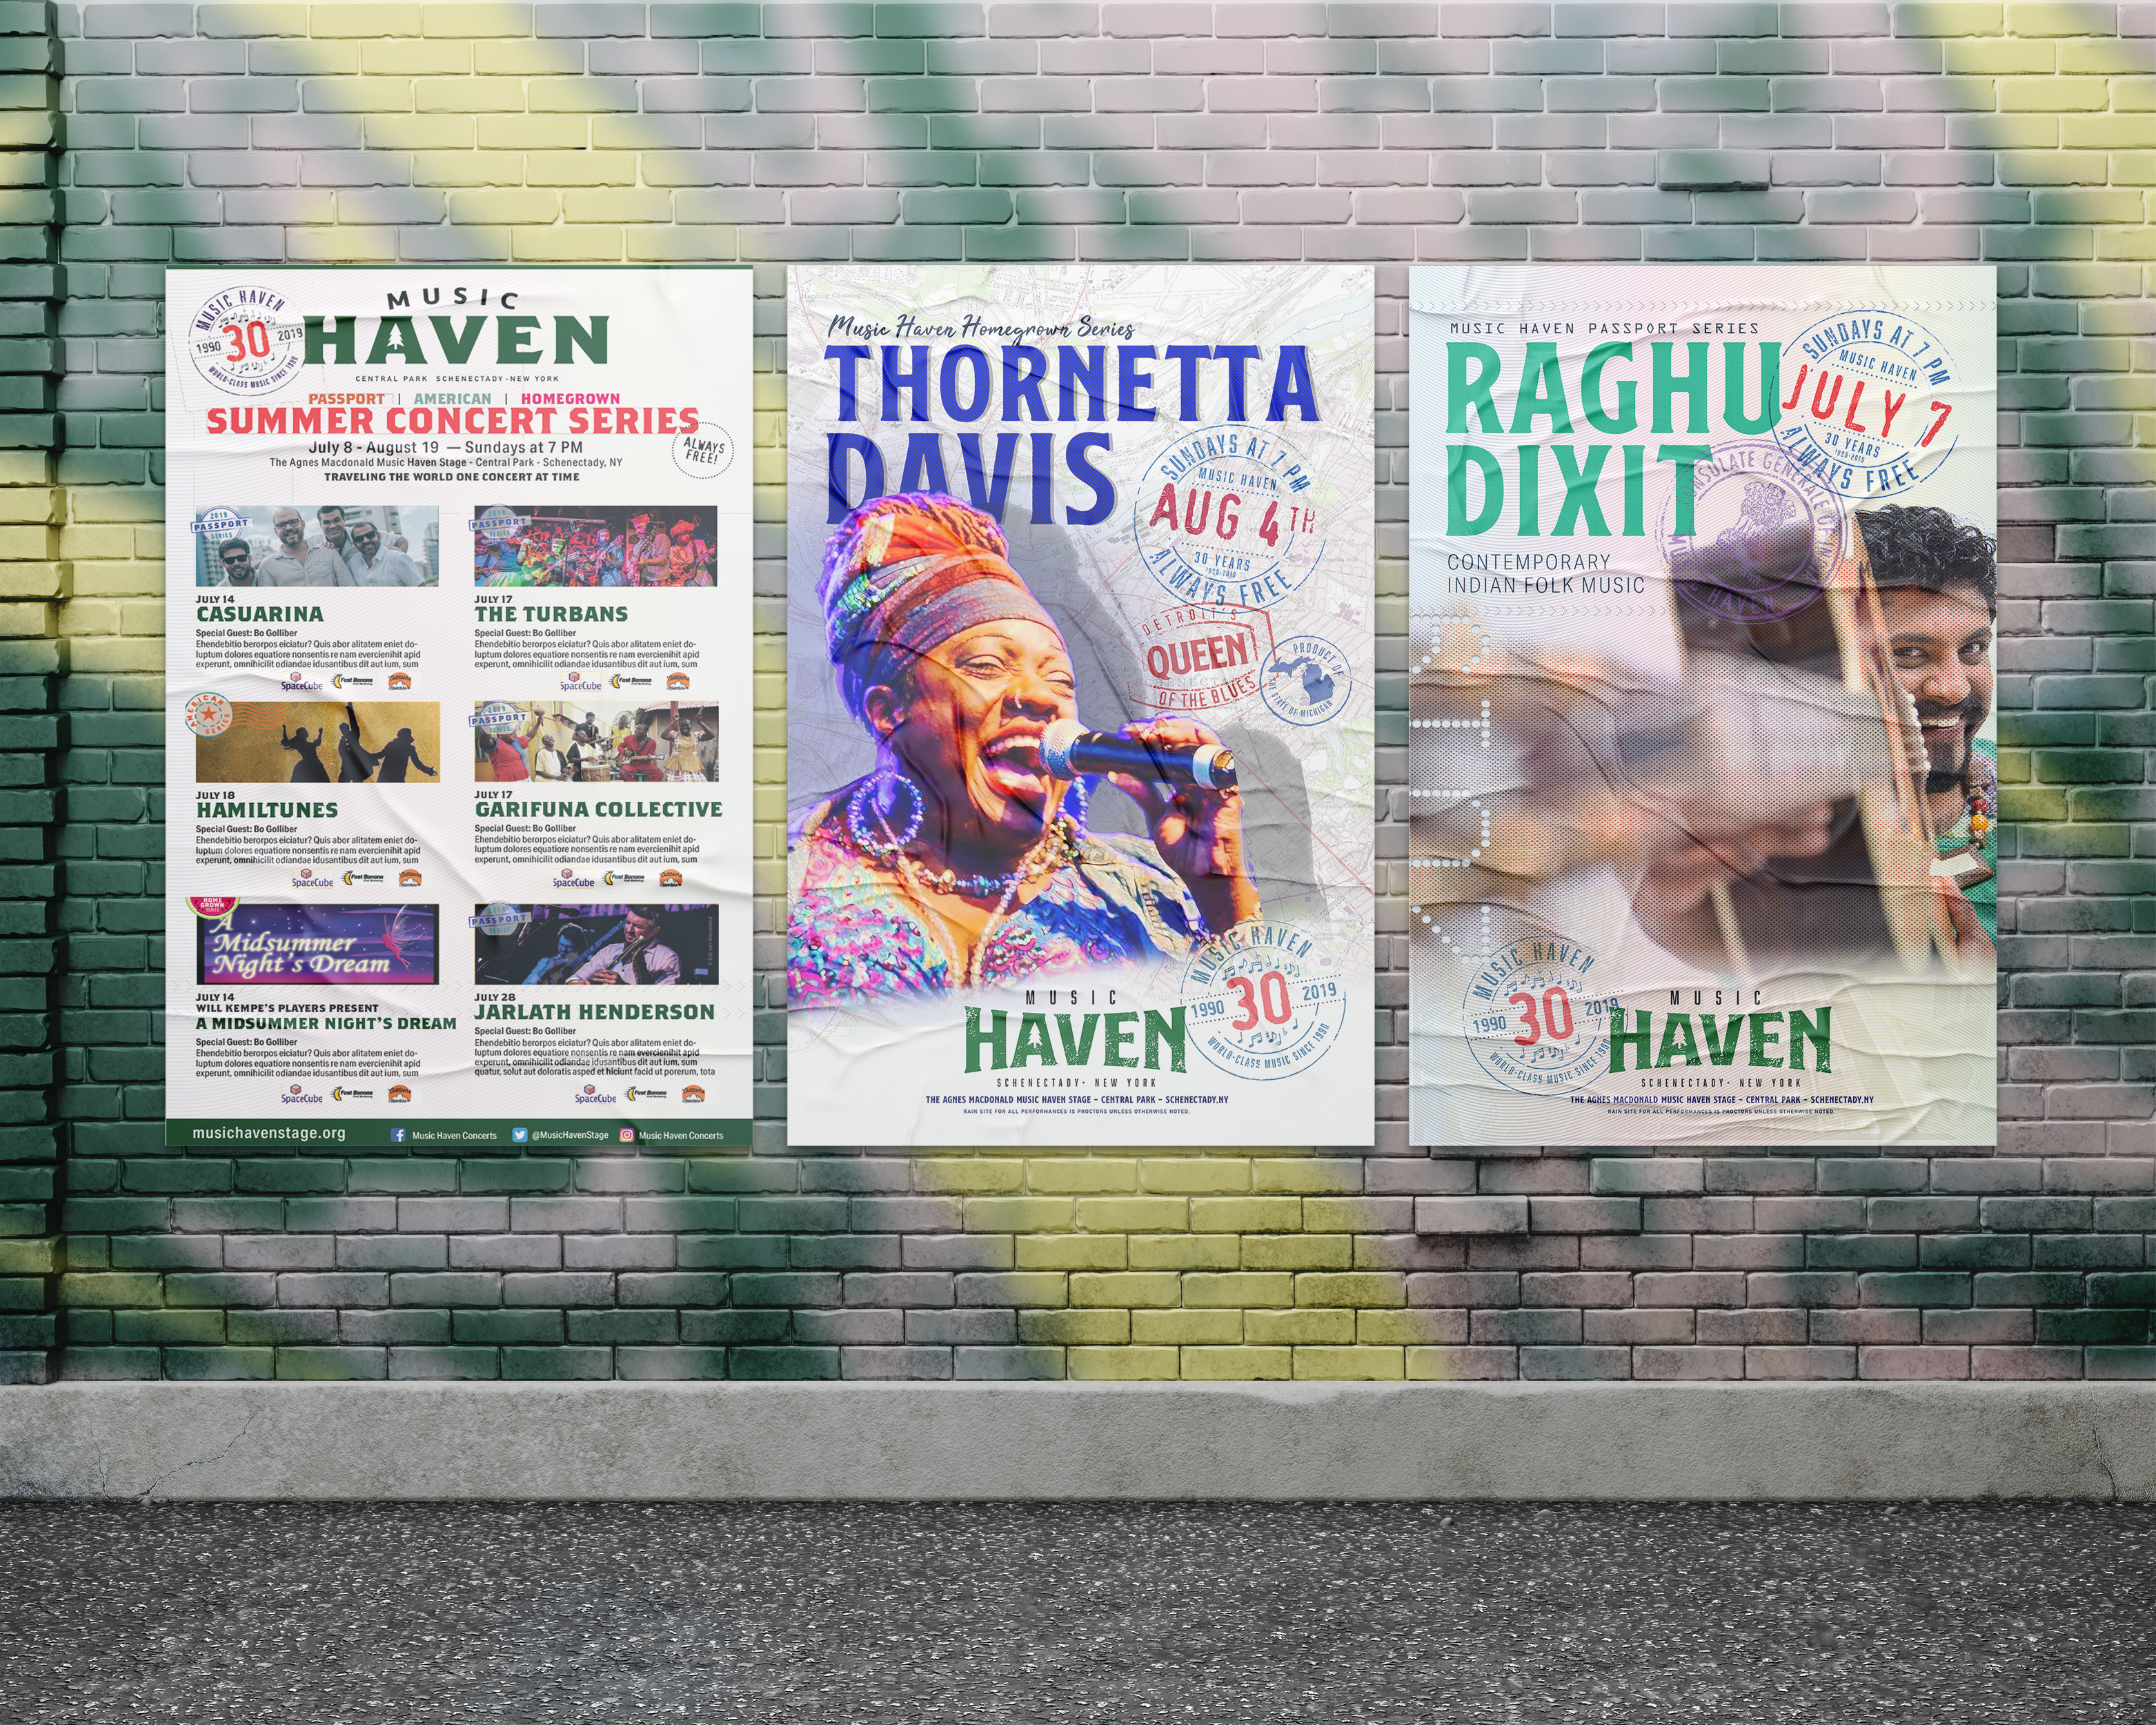 HAVEN_posters_wall